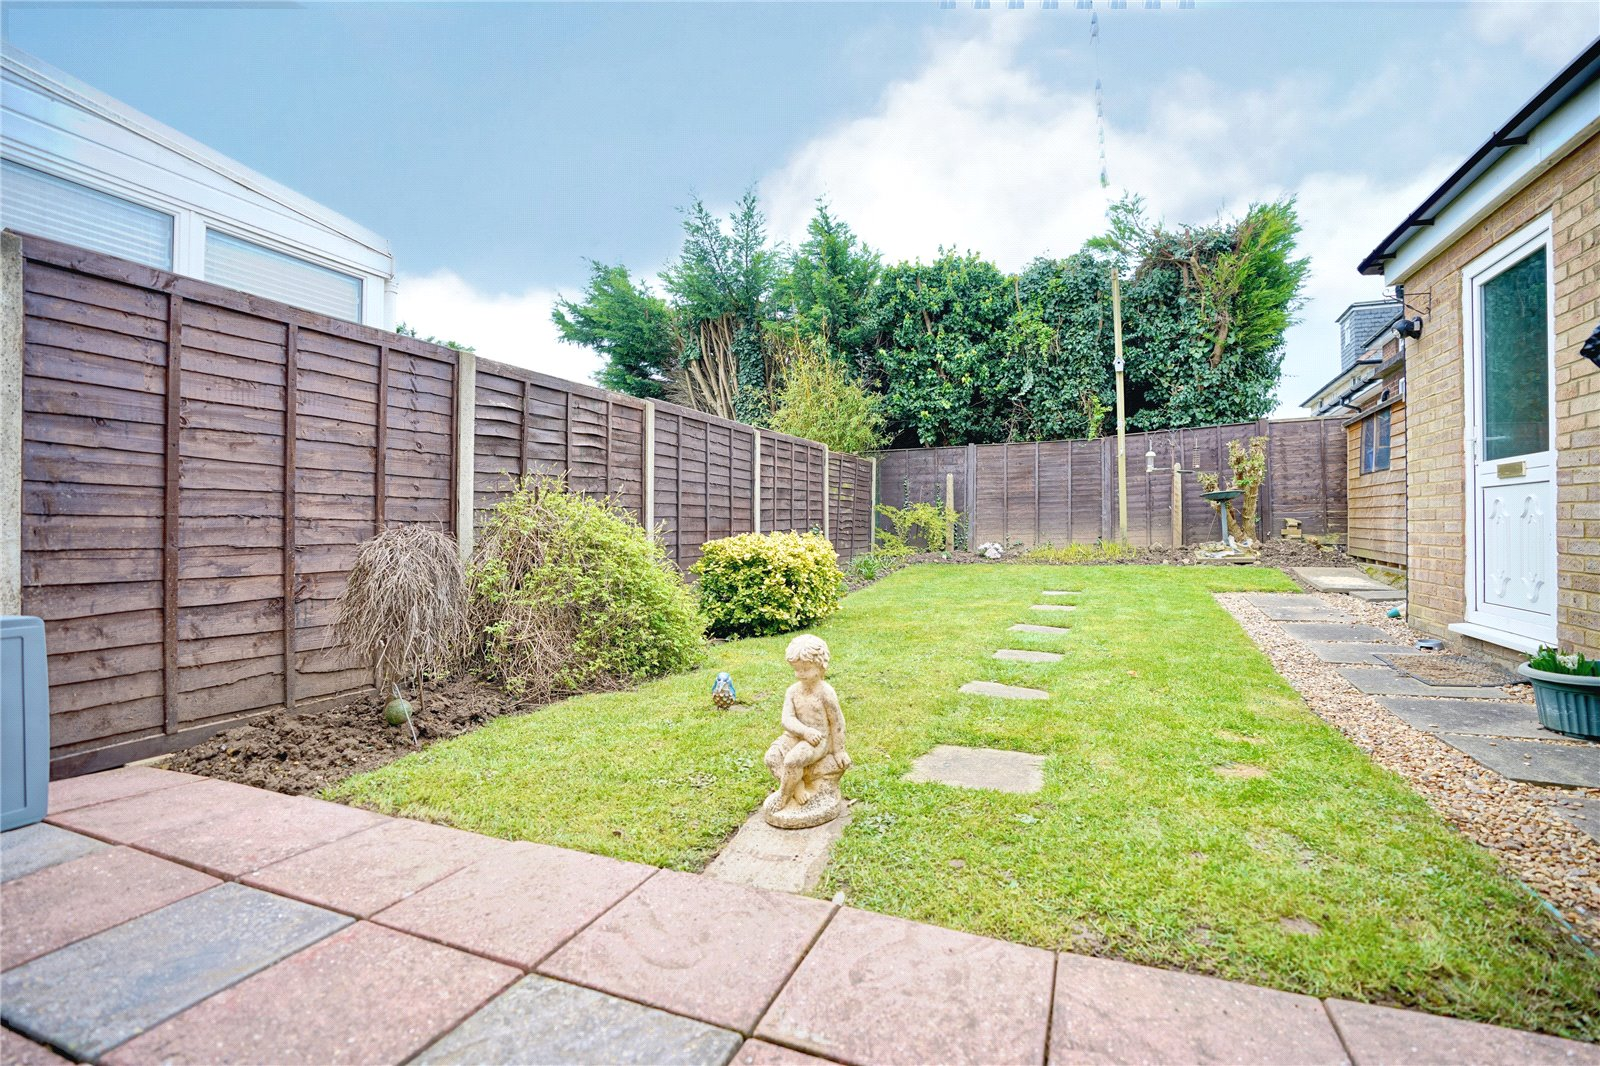 4 bed house for sale in Eaton Socon, PE19 8HU 6